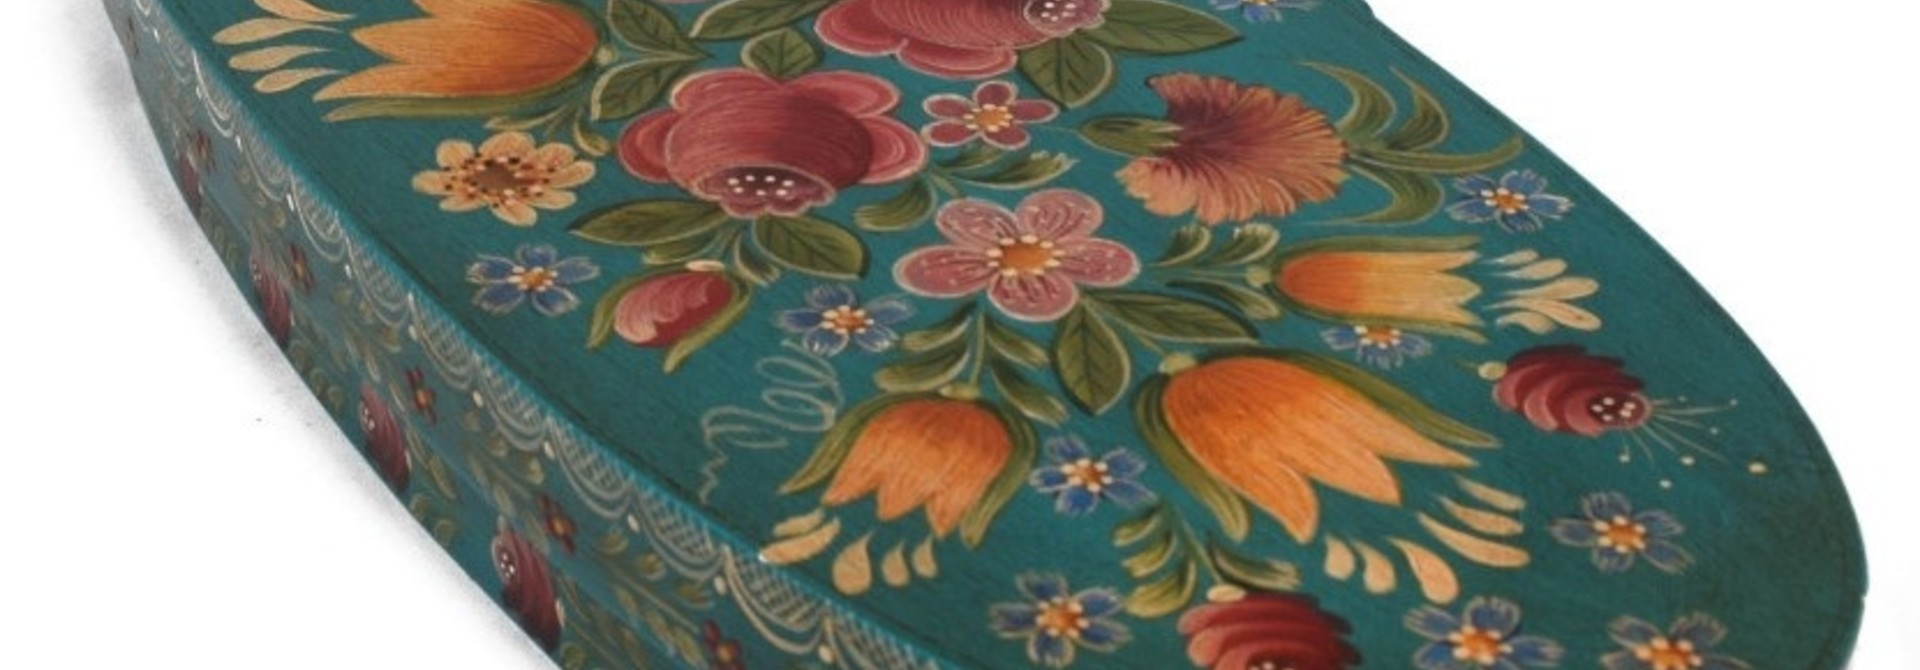 Oval box teal with flowers